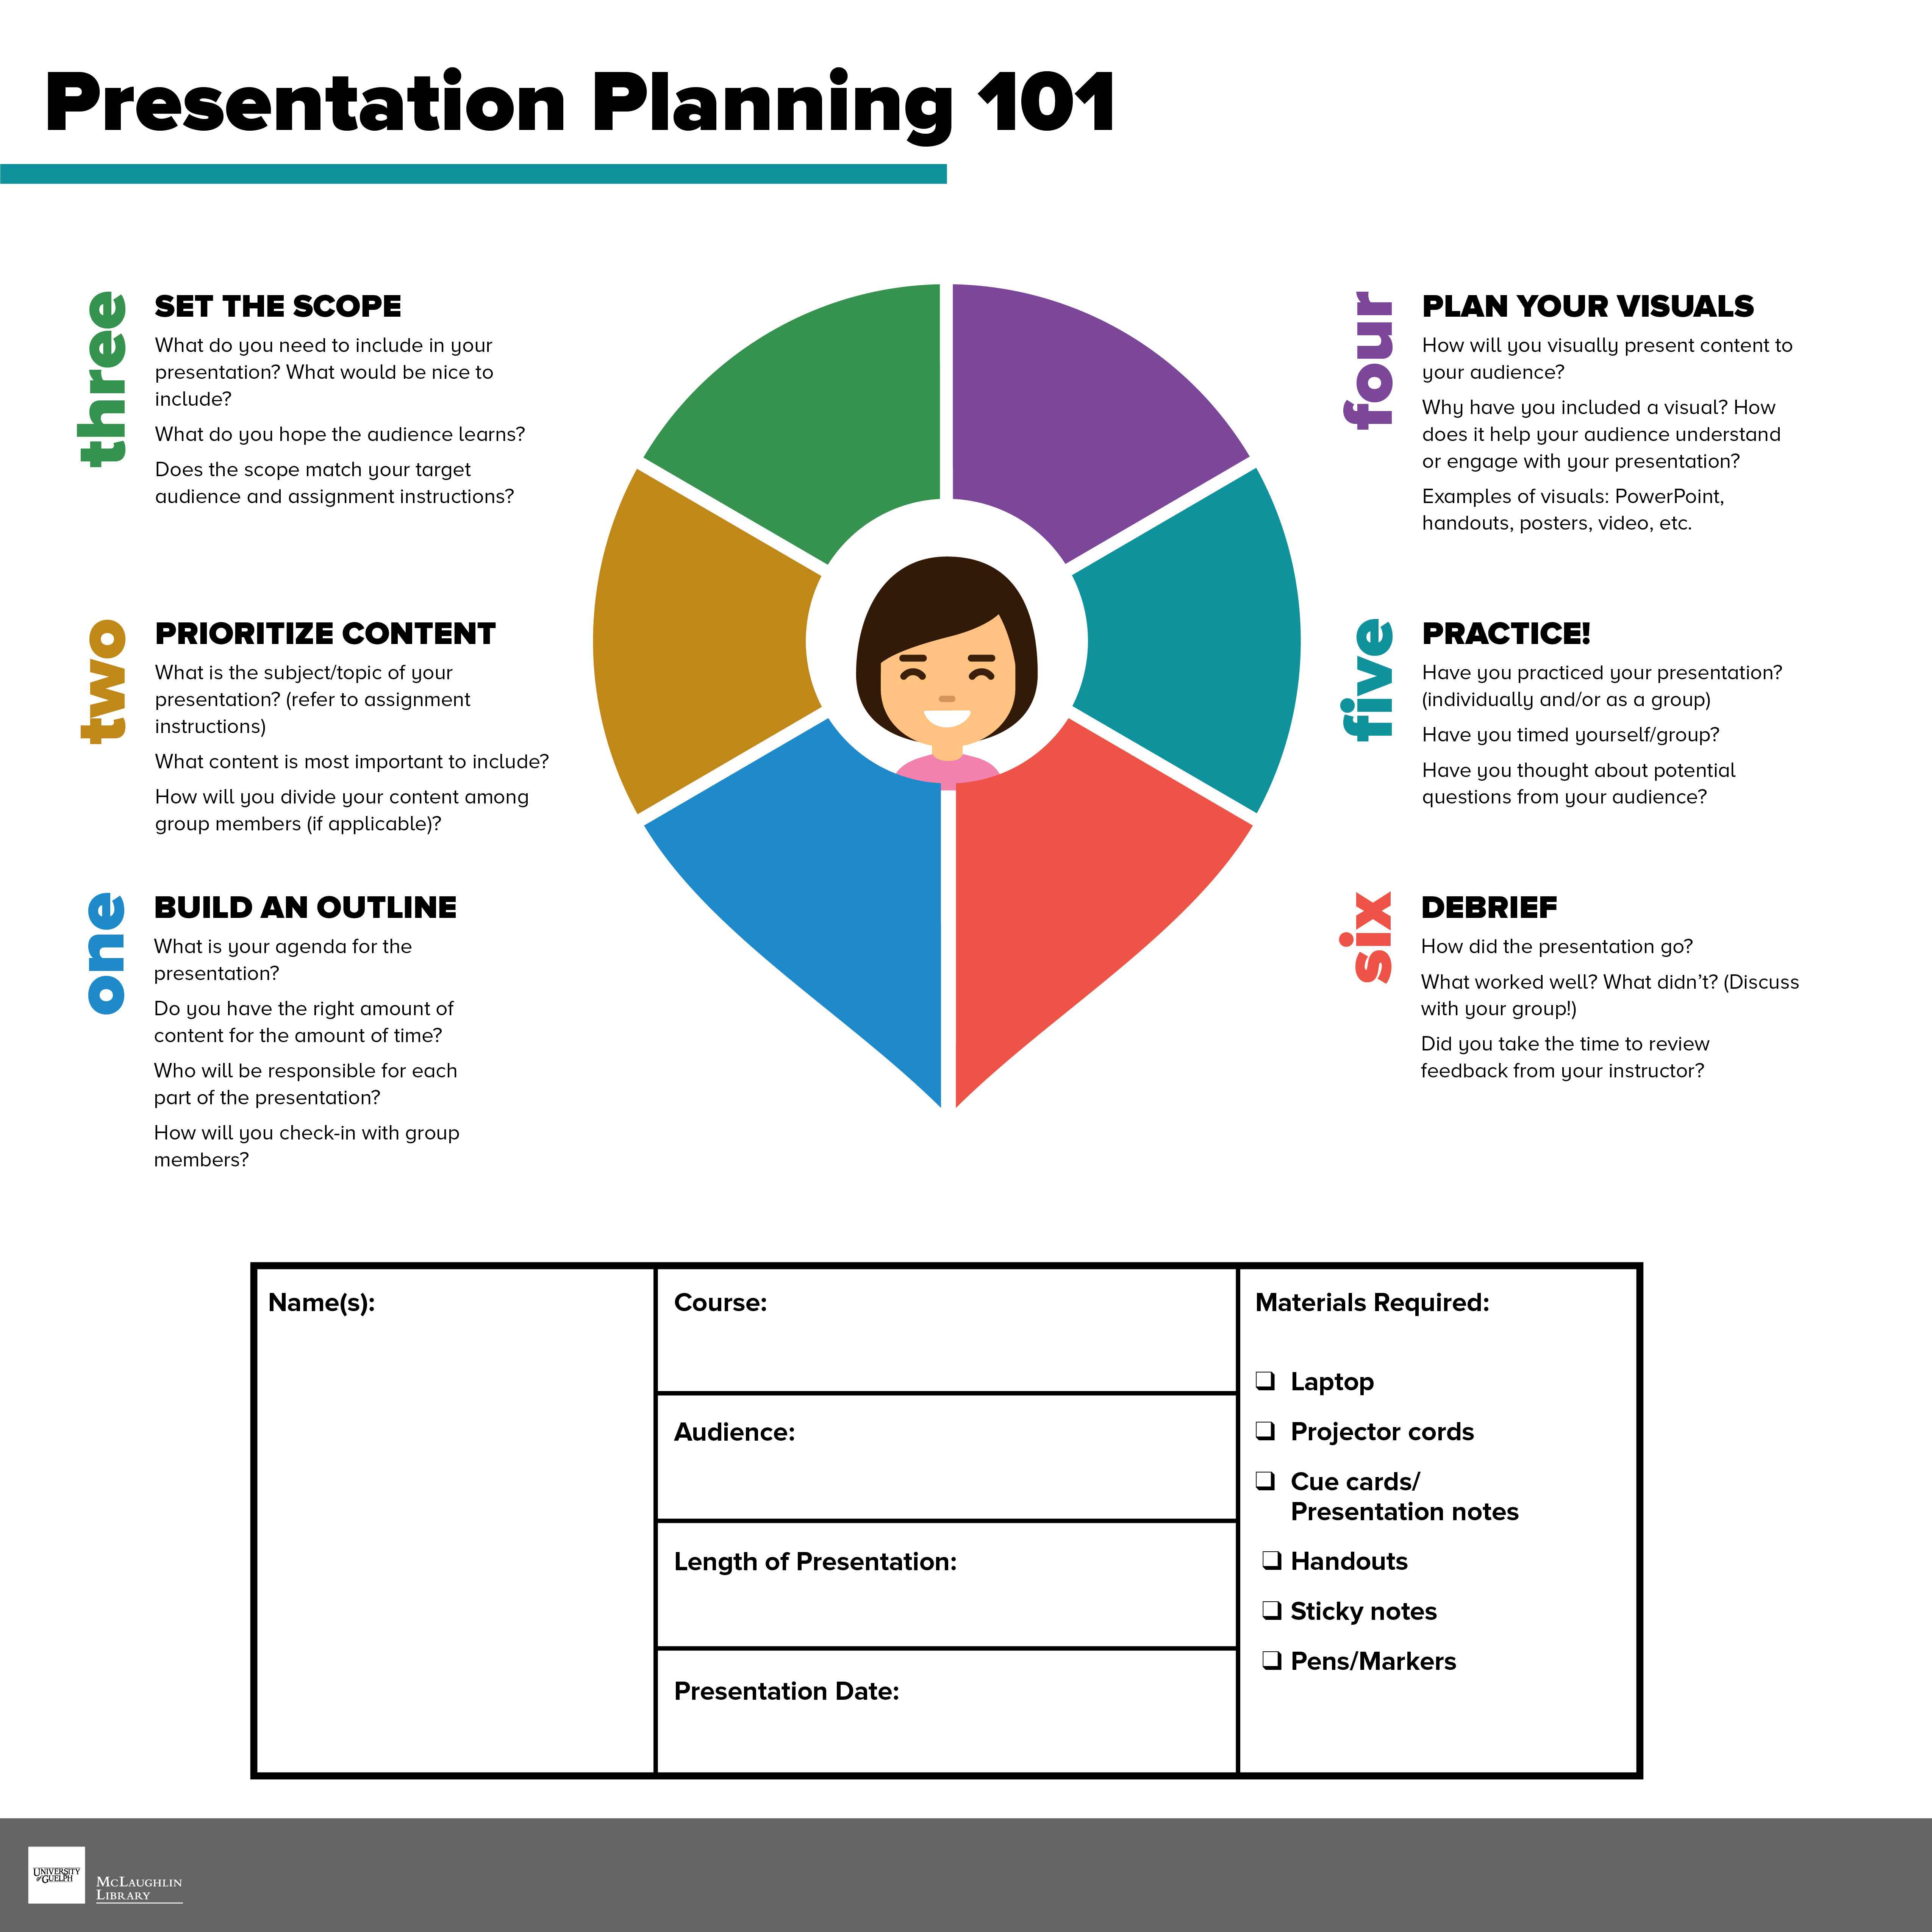 Presentation Planning 101. Transcript available below.